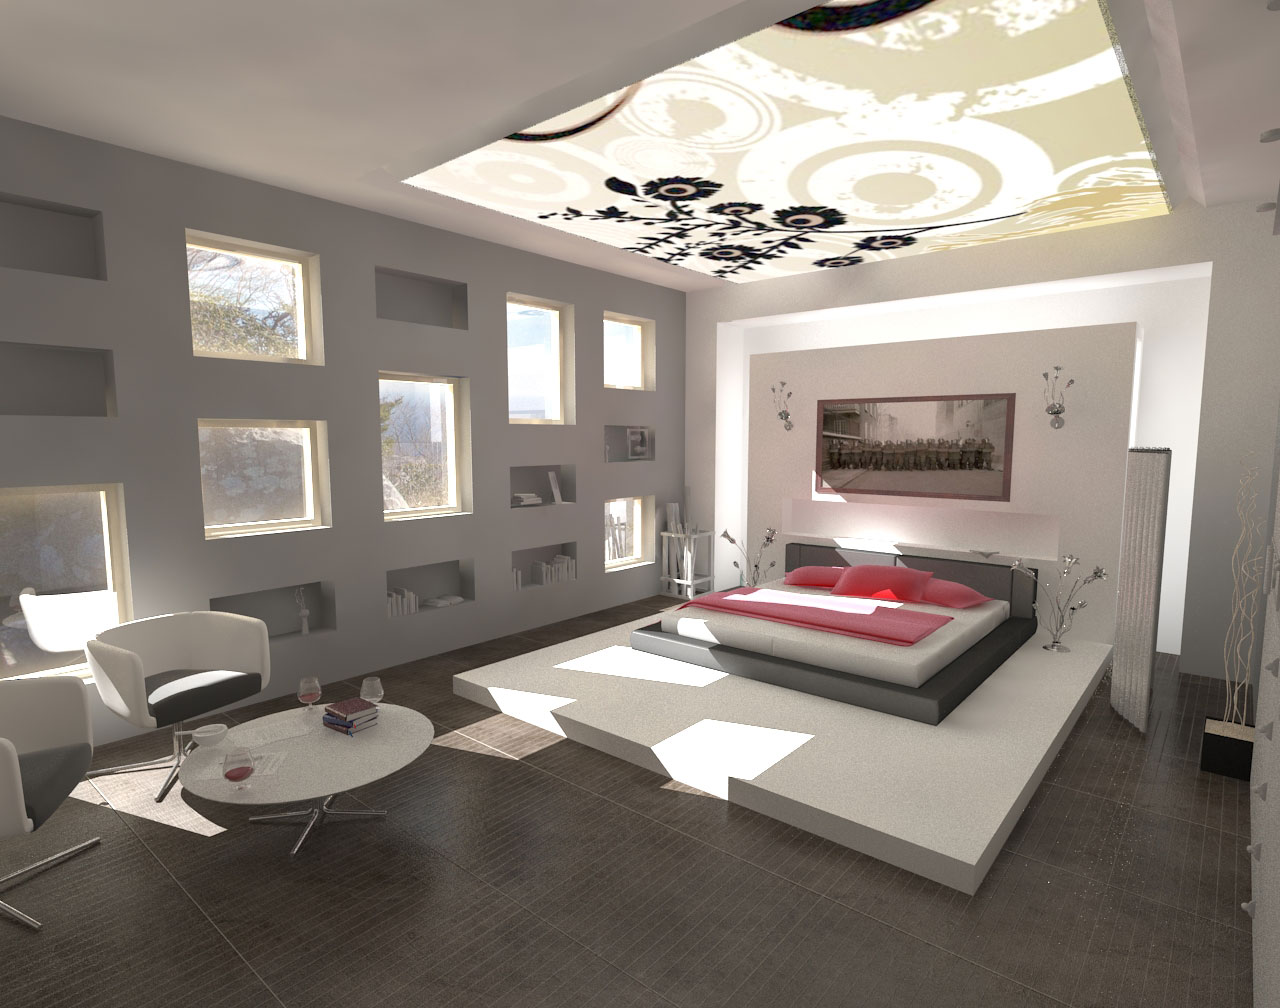 Decorations: Minimalist Design - Modern Bedroom Interior Design Ideas